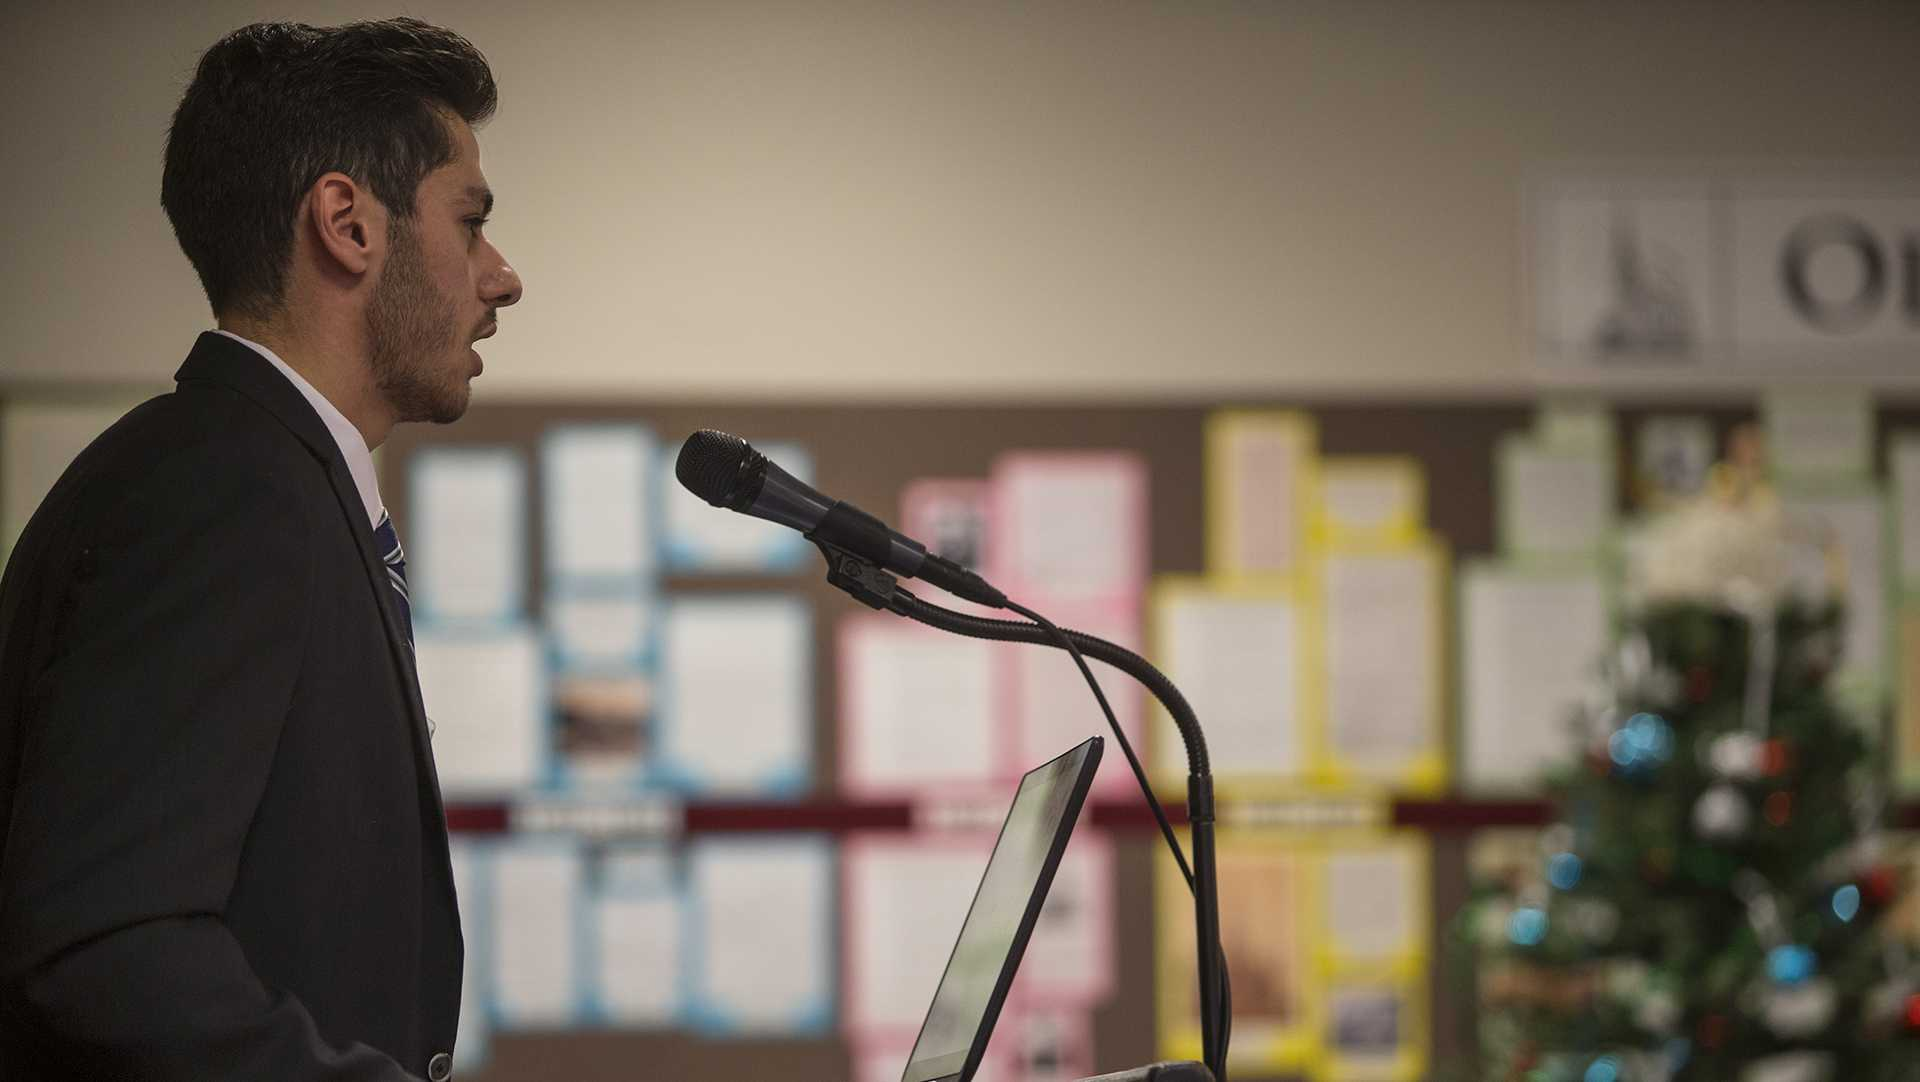 UI junior Moe Shakally speaks during a presentation for Iowa City Foreign Relations Council of his experiences as a Syrian refugee on Thursday, December 1, 2016. Shakally is an intern for the council, and he spent the summer setting up speakers and creating program brochures for the organization. (The Daily Iowan/Joseph Cress)